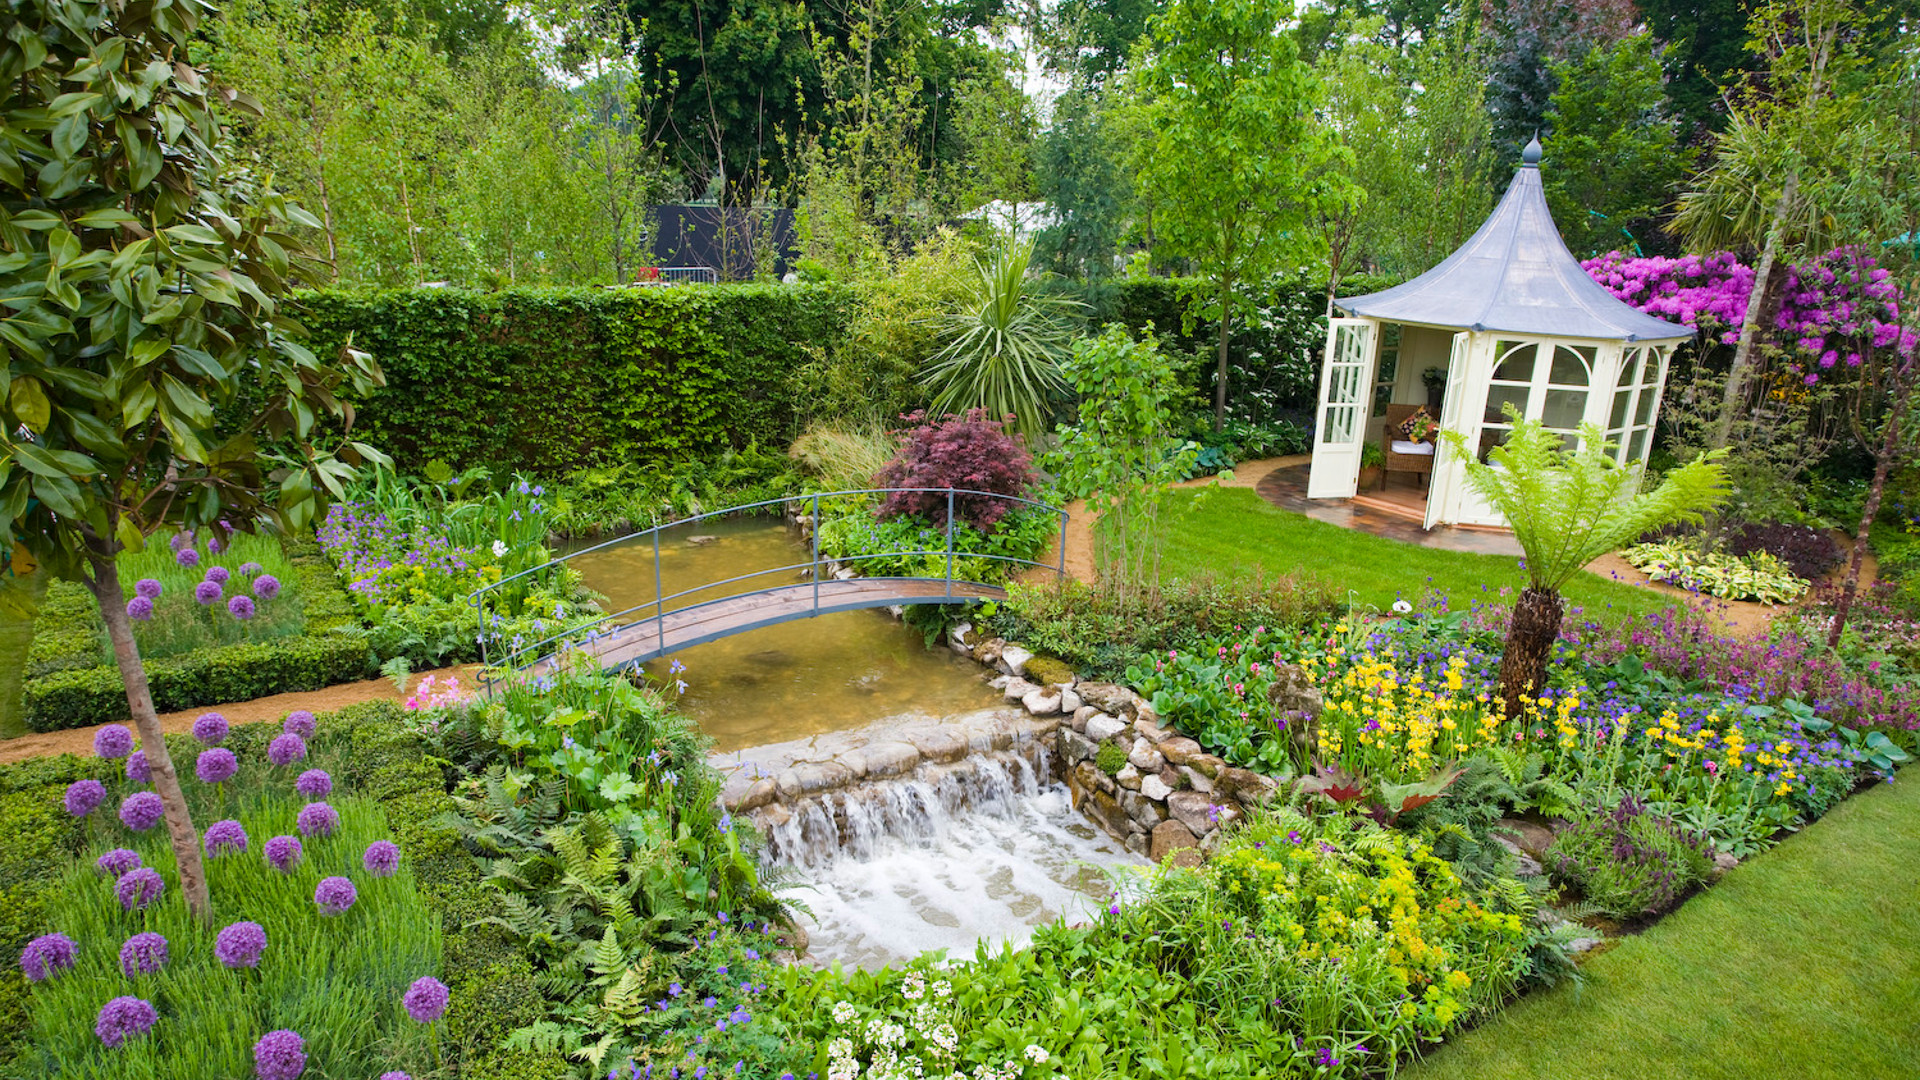 Tim austen garden designs designer gardens for Best home image